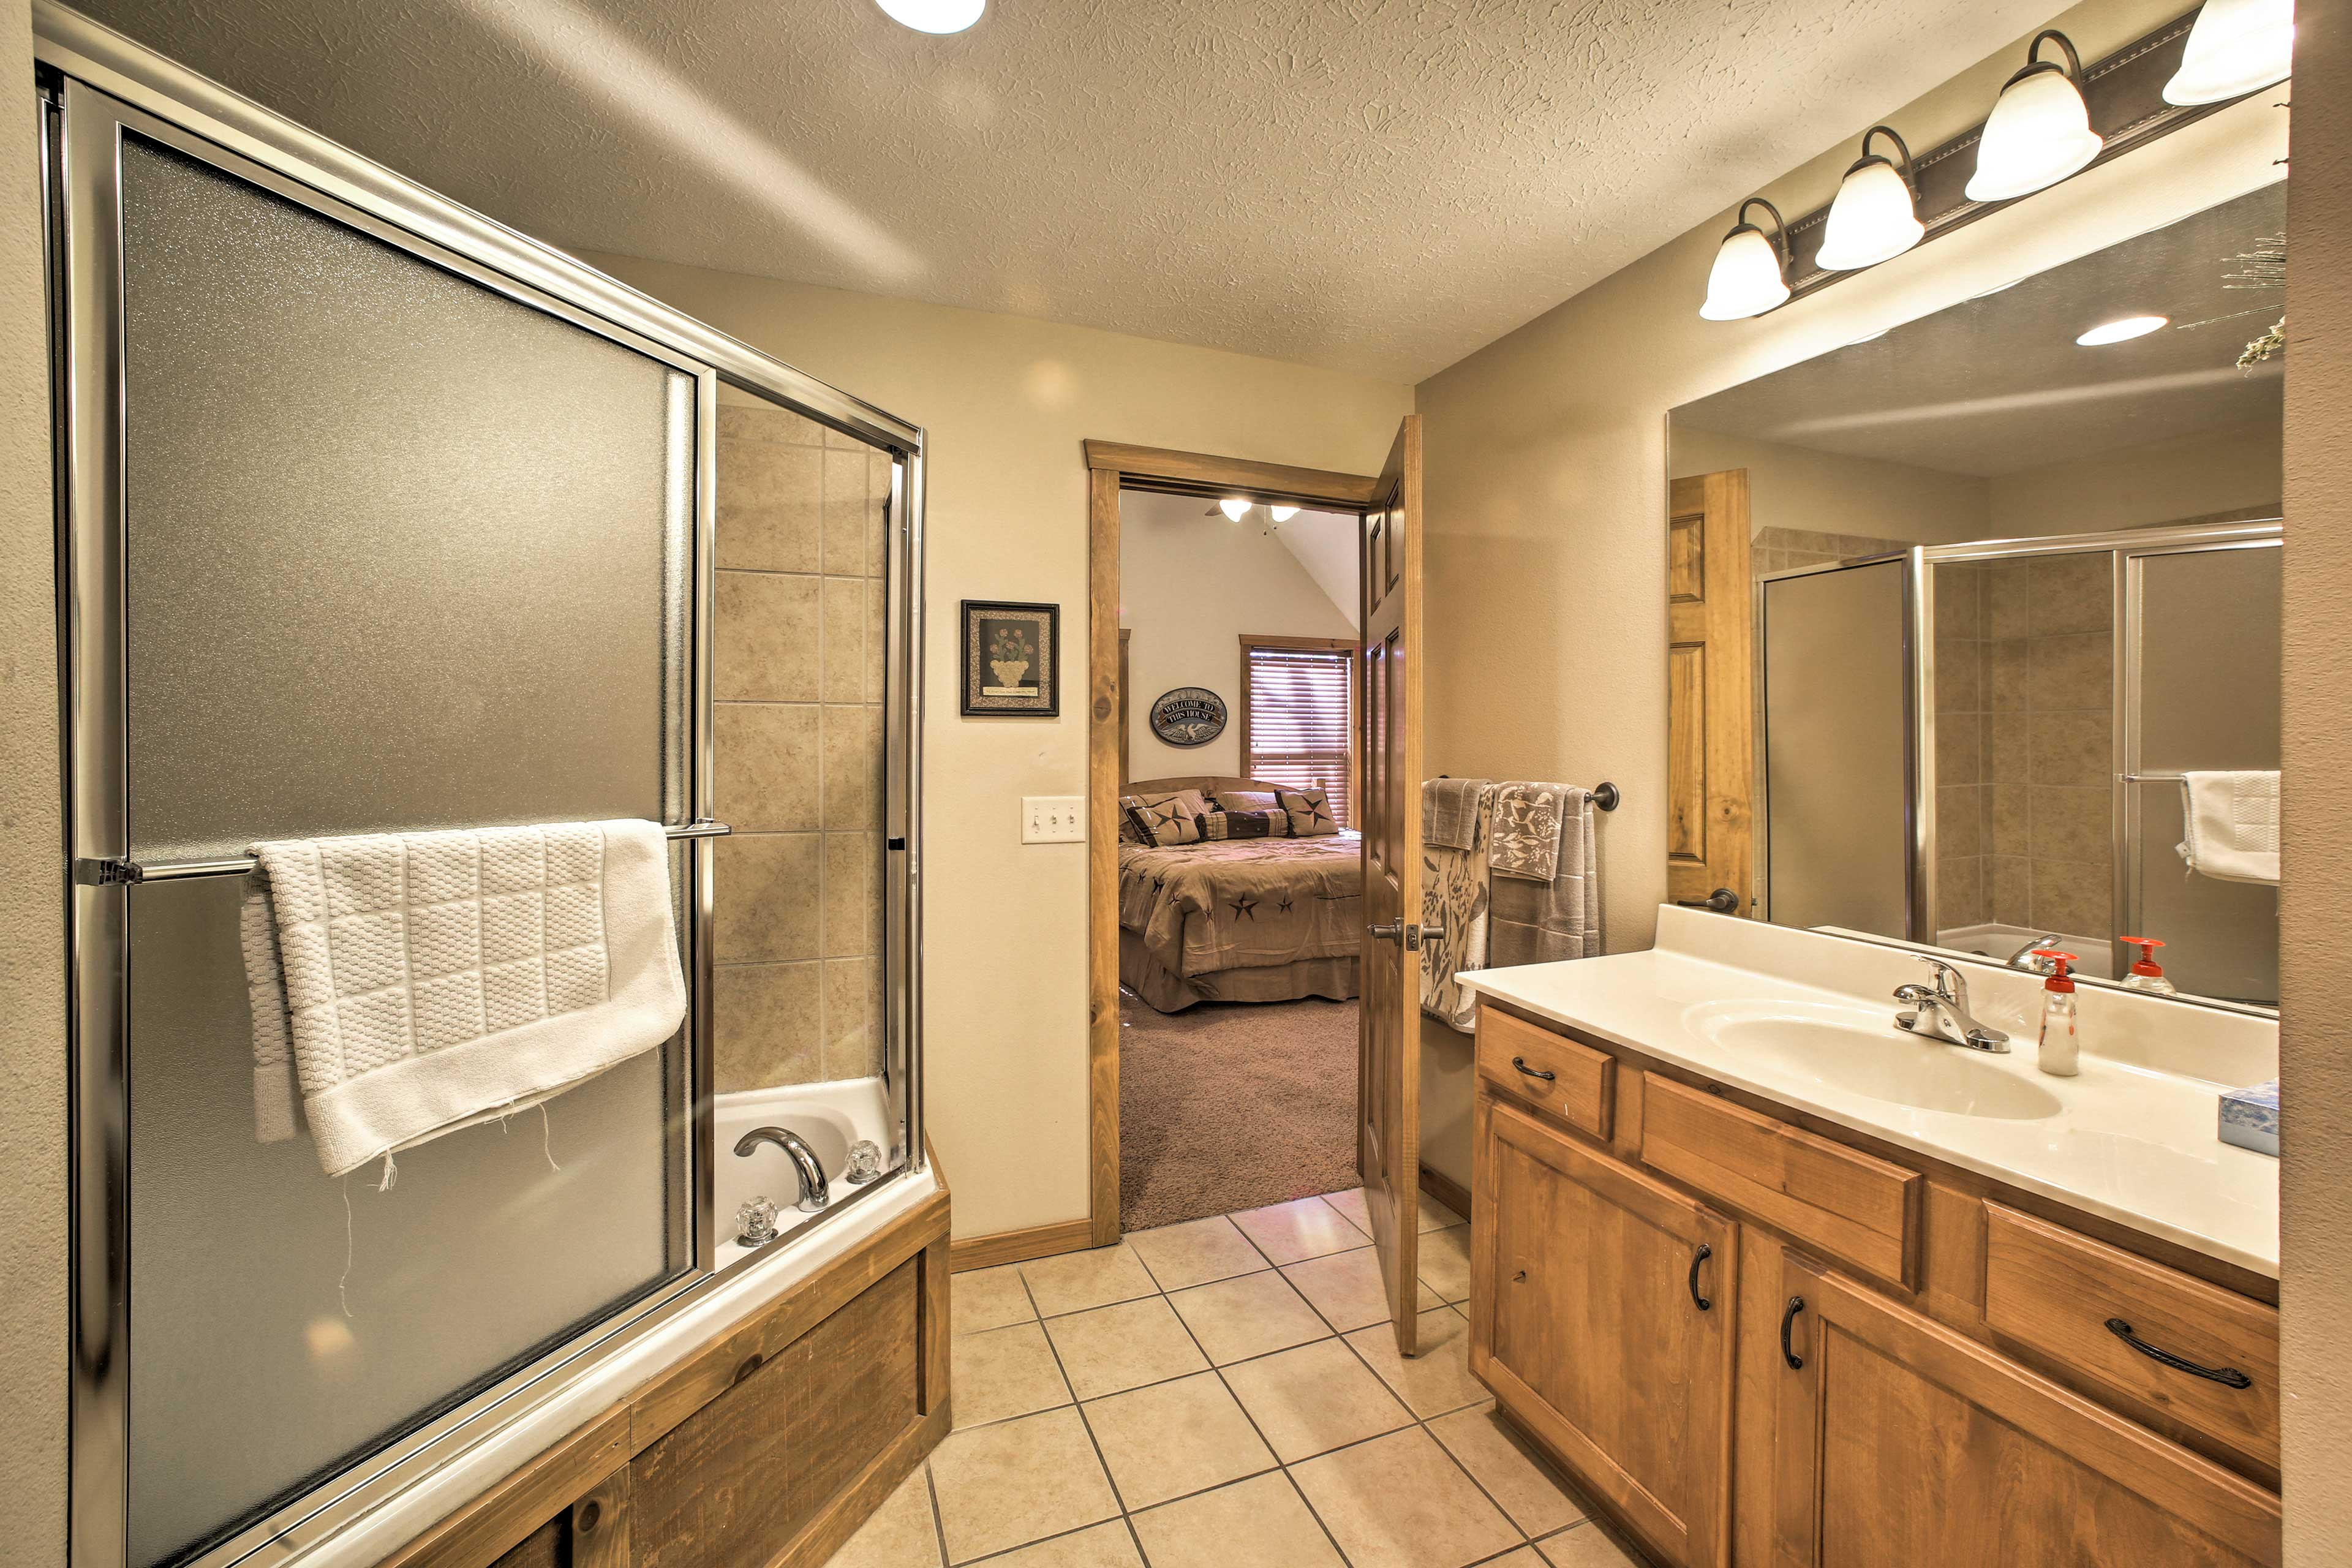 Each bathroom is equipped with freshly laundered towels.